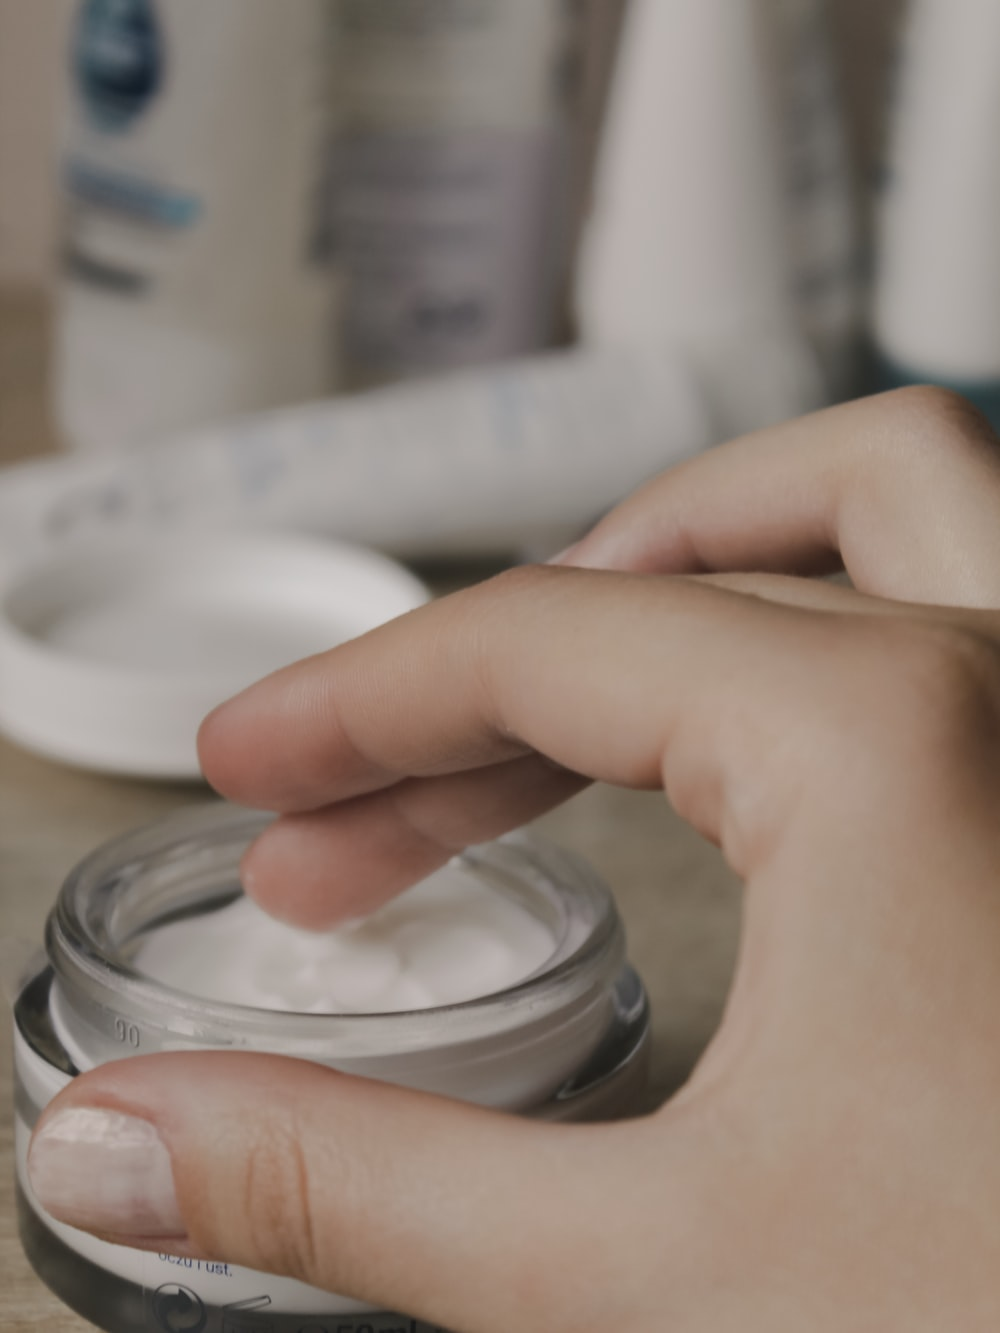 person's finger touching white cosmetic cream